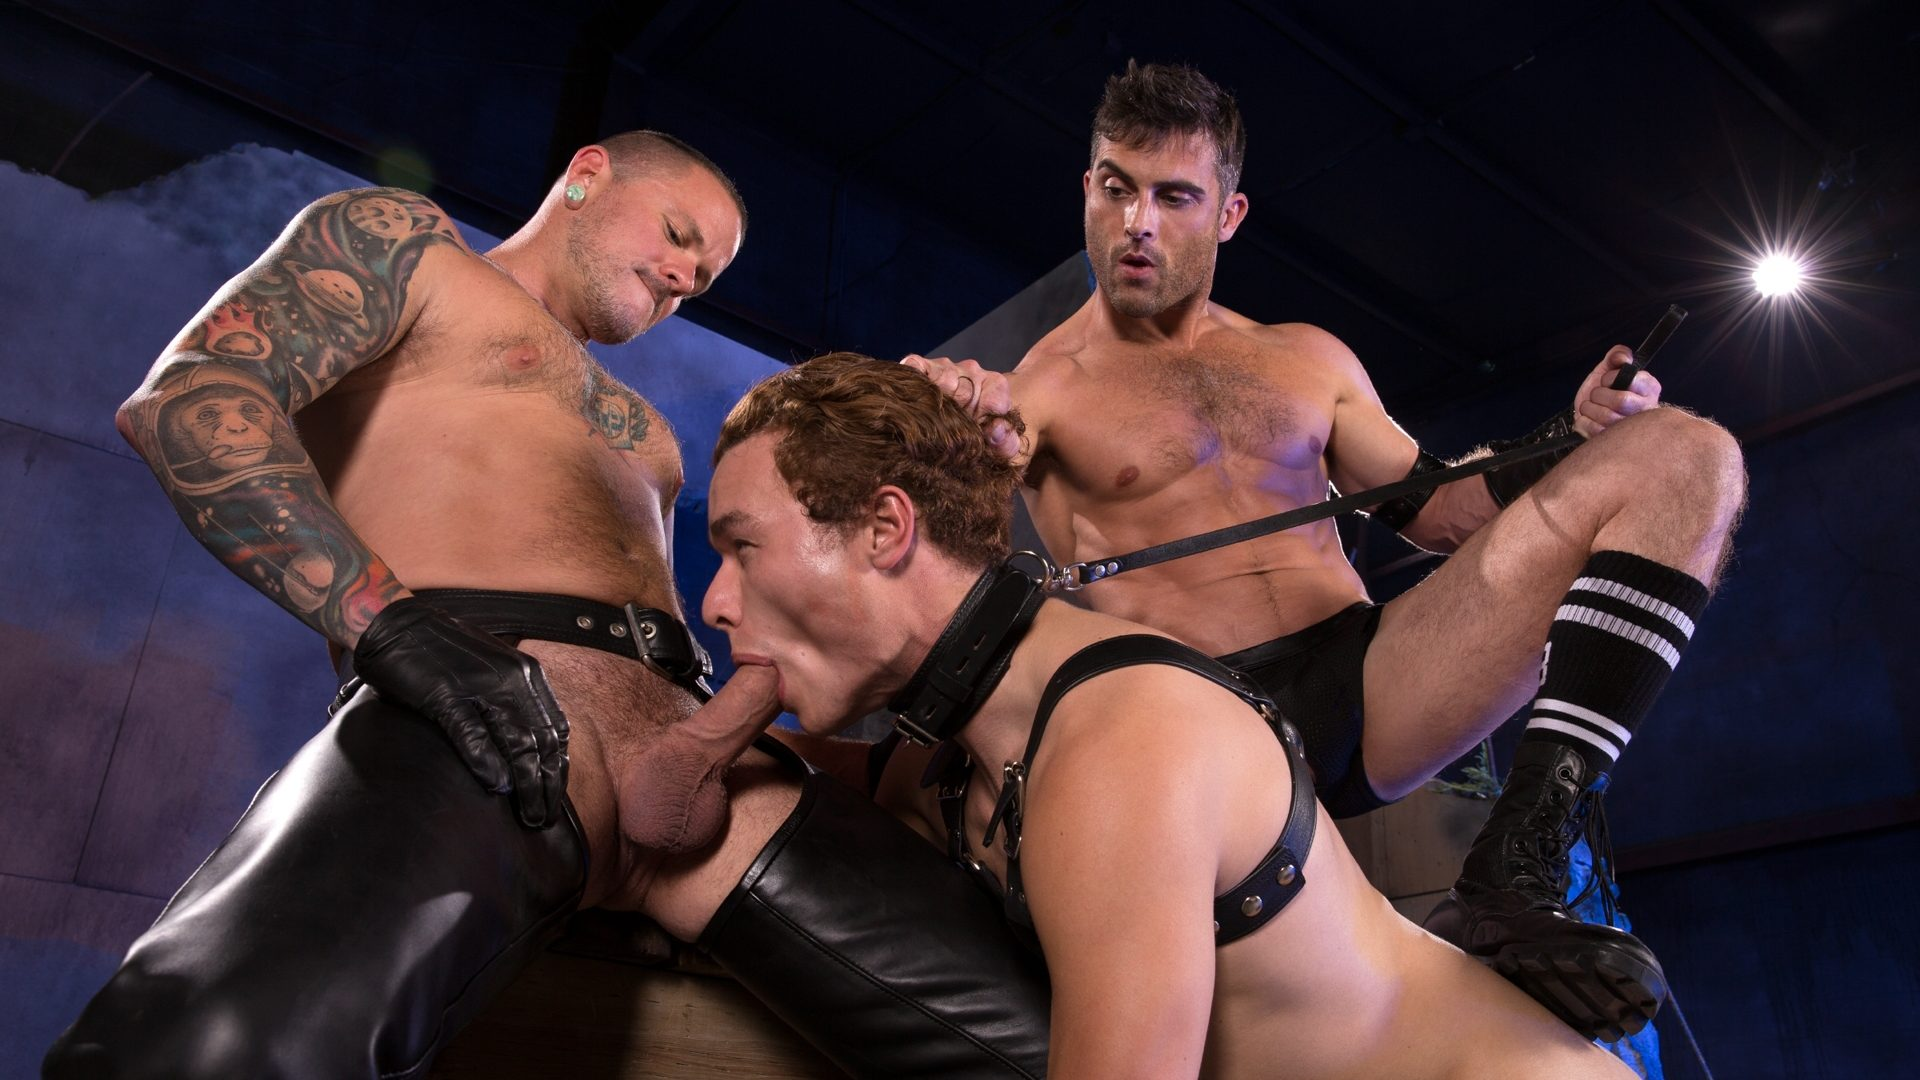 Leather Sex: Lance Hart, Micky Mackenzie and Max Cameron